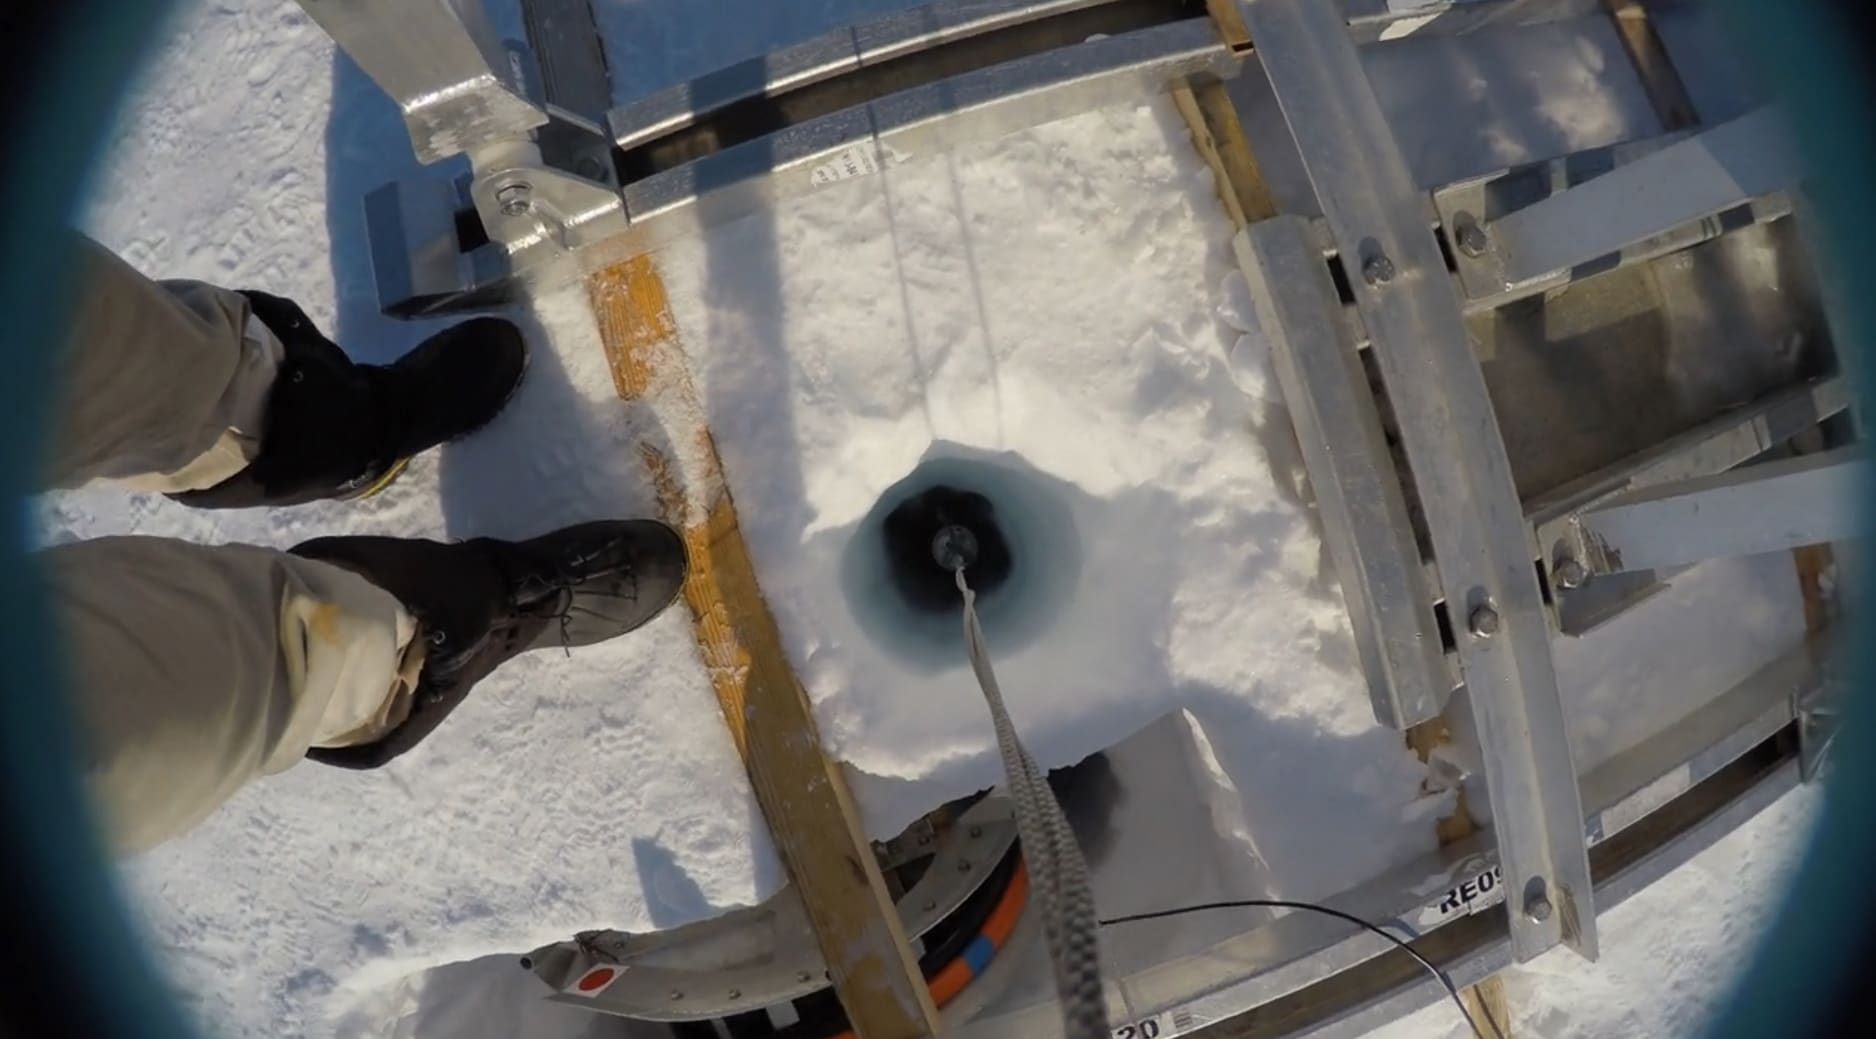 Scientists find unexpected animal life far beneath Antarctica's floating ice shelves